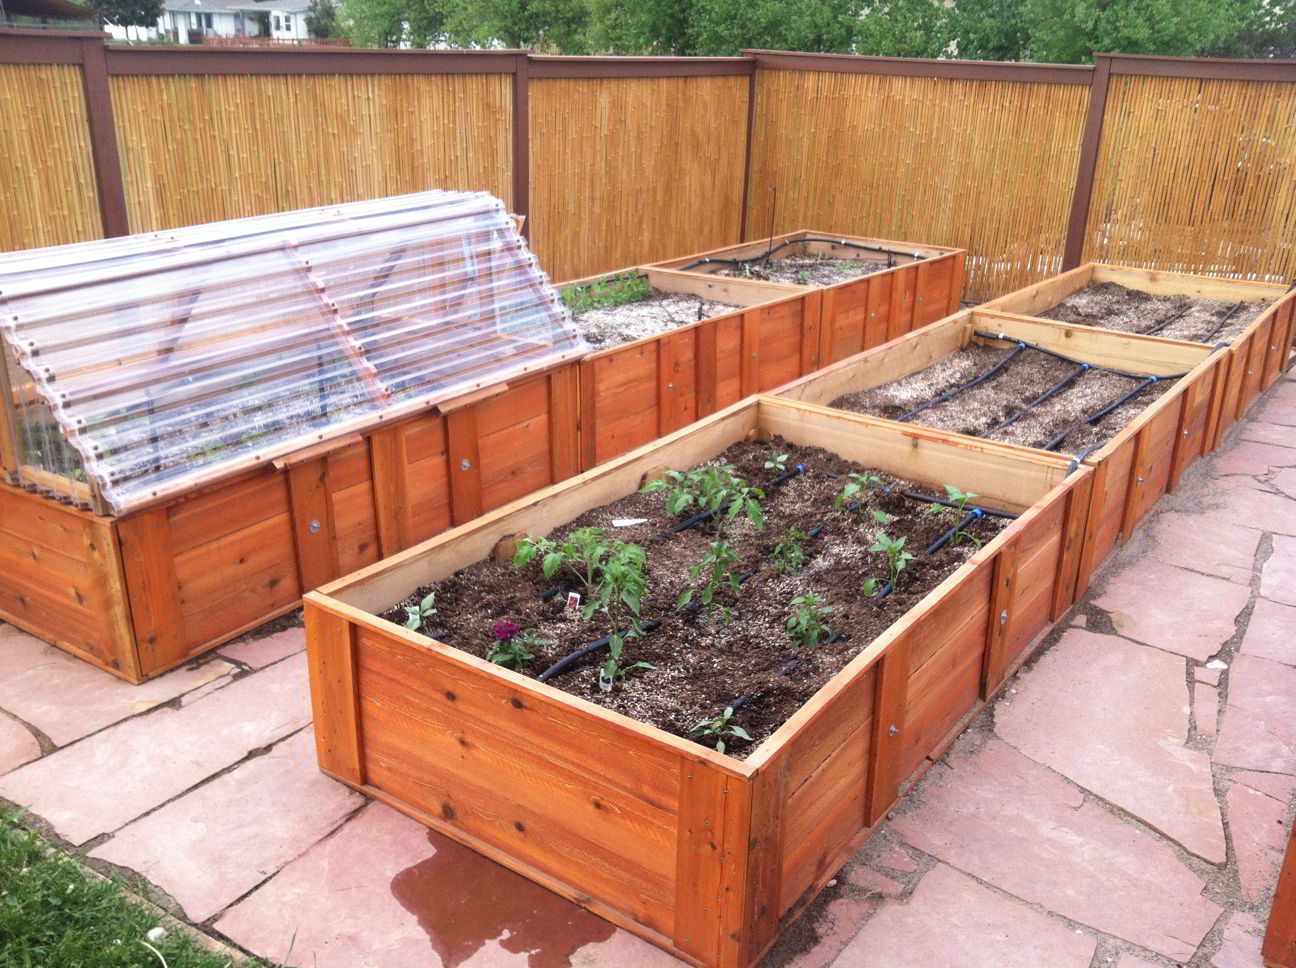 Merveilleux Raised Bed Garden And Attached Cold Frame With Drip Irrigation And  Flagstone Pathways.